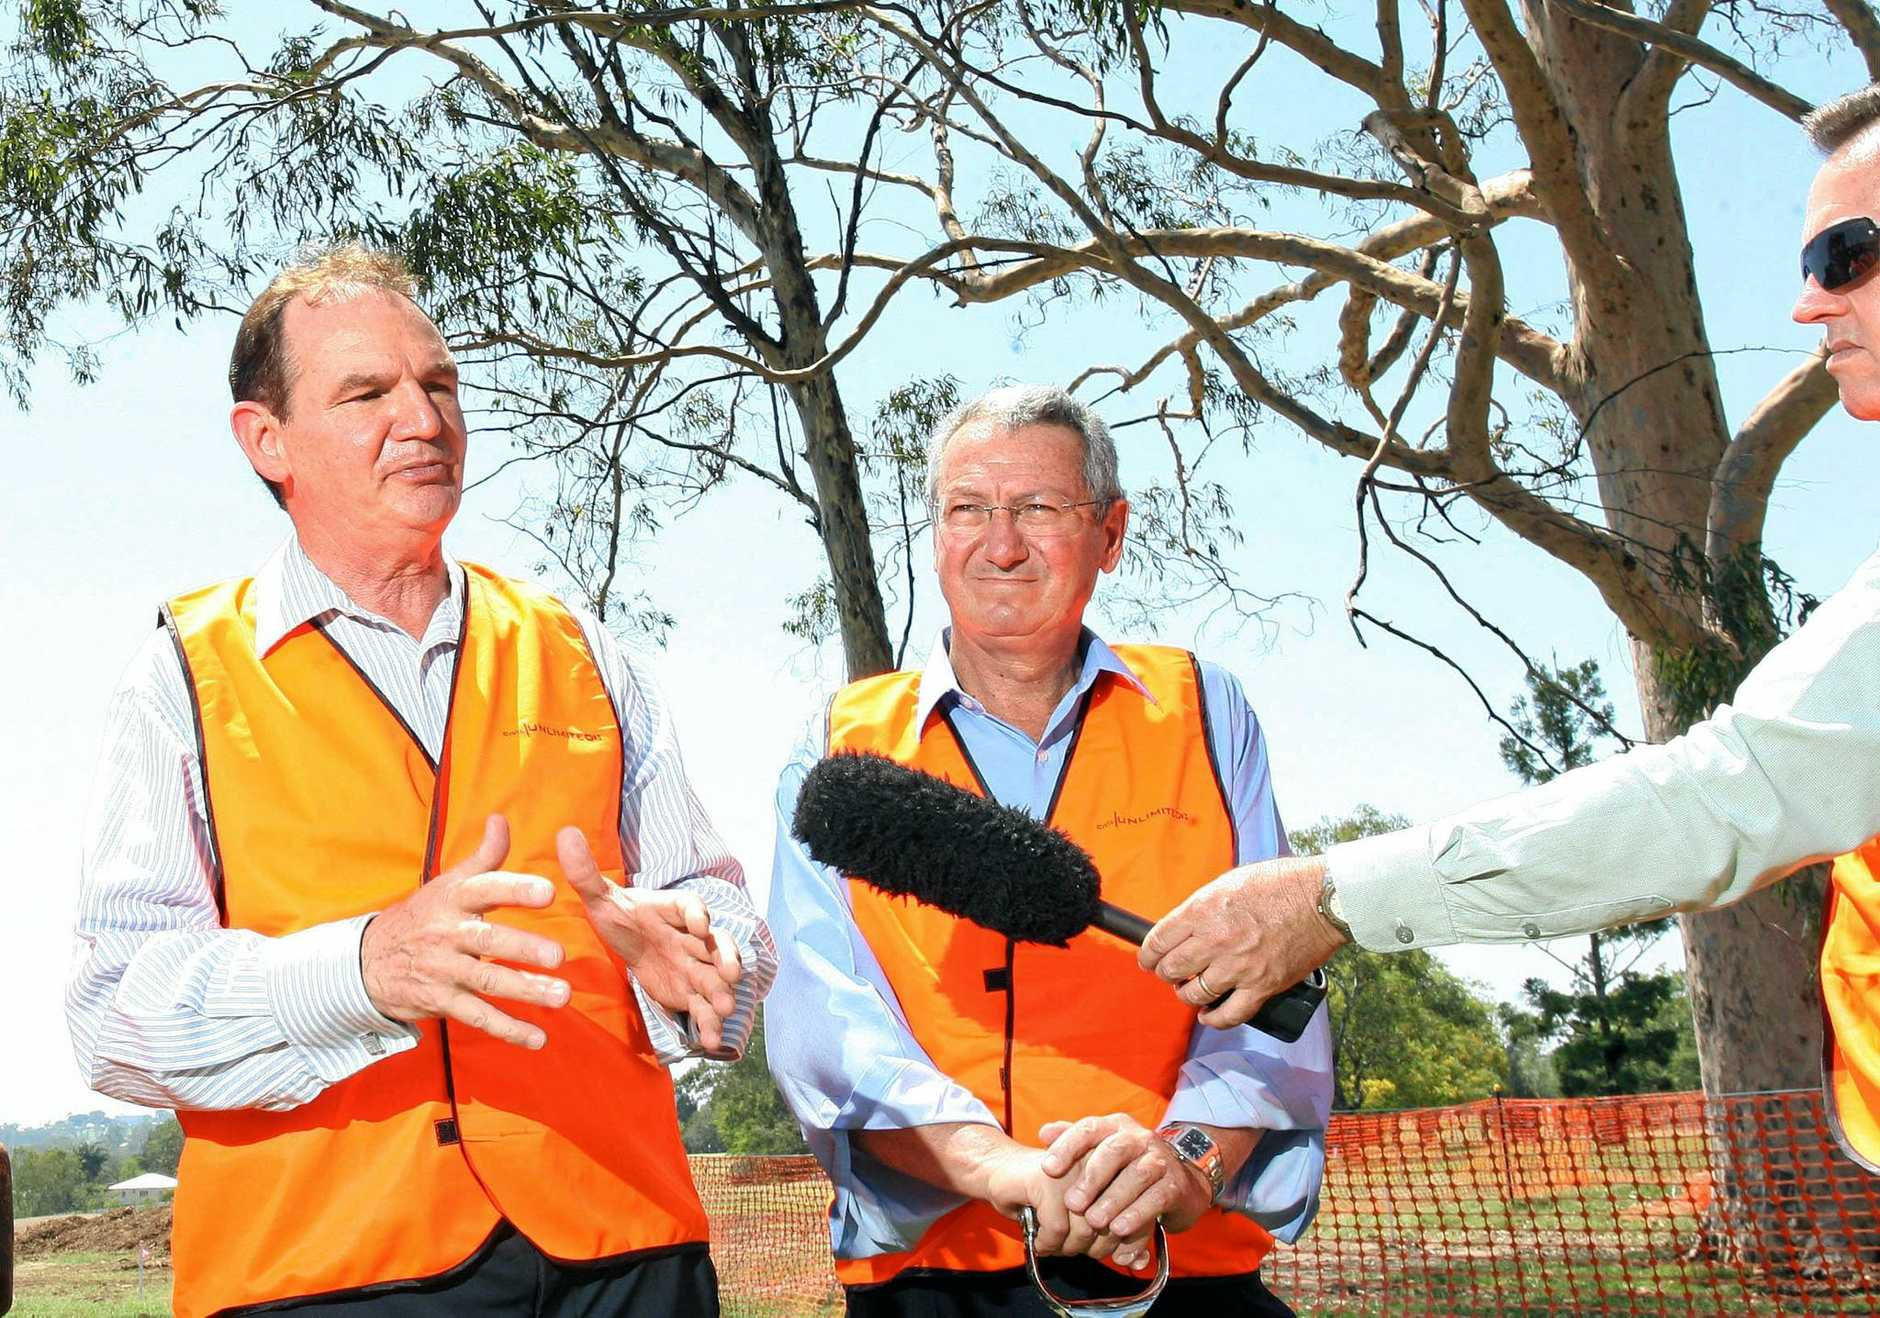 BROTHERLY LOVE: Former Ipswich Mayor Paul Pisasale with his brother Cr Charlie Pisasale announcing an $80 million residential development at Leichhardt in 2009.